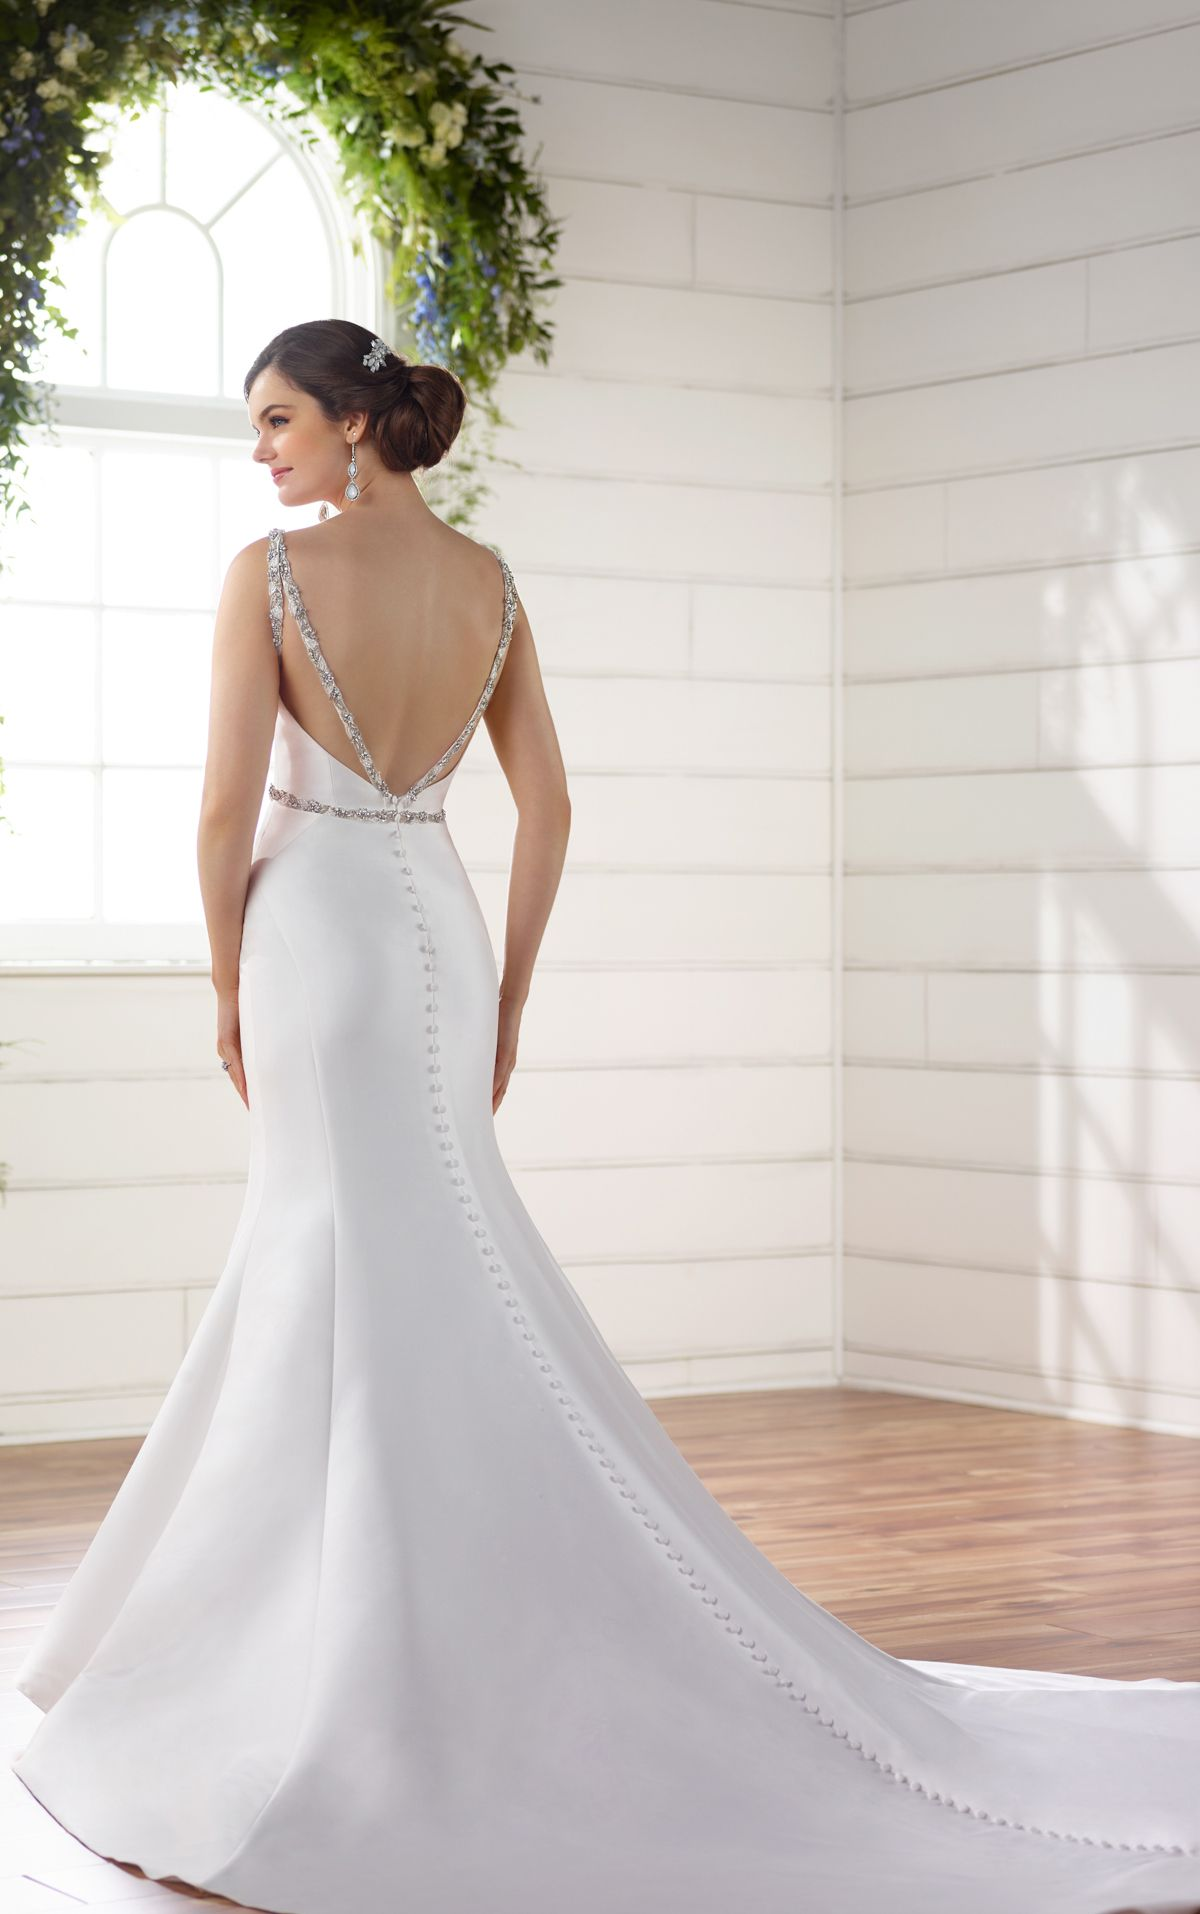 47641fce25 Wedding Dresses in 2019